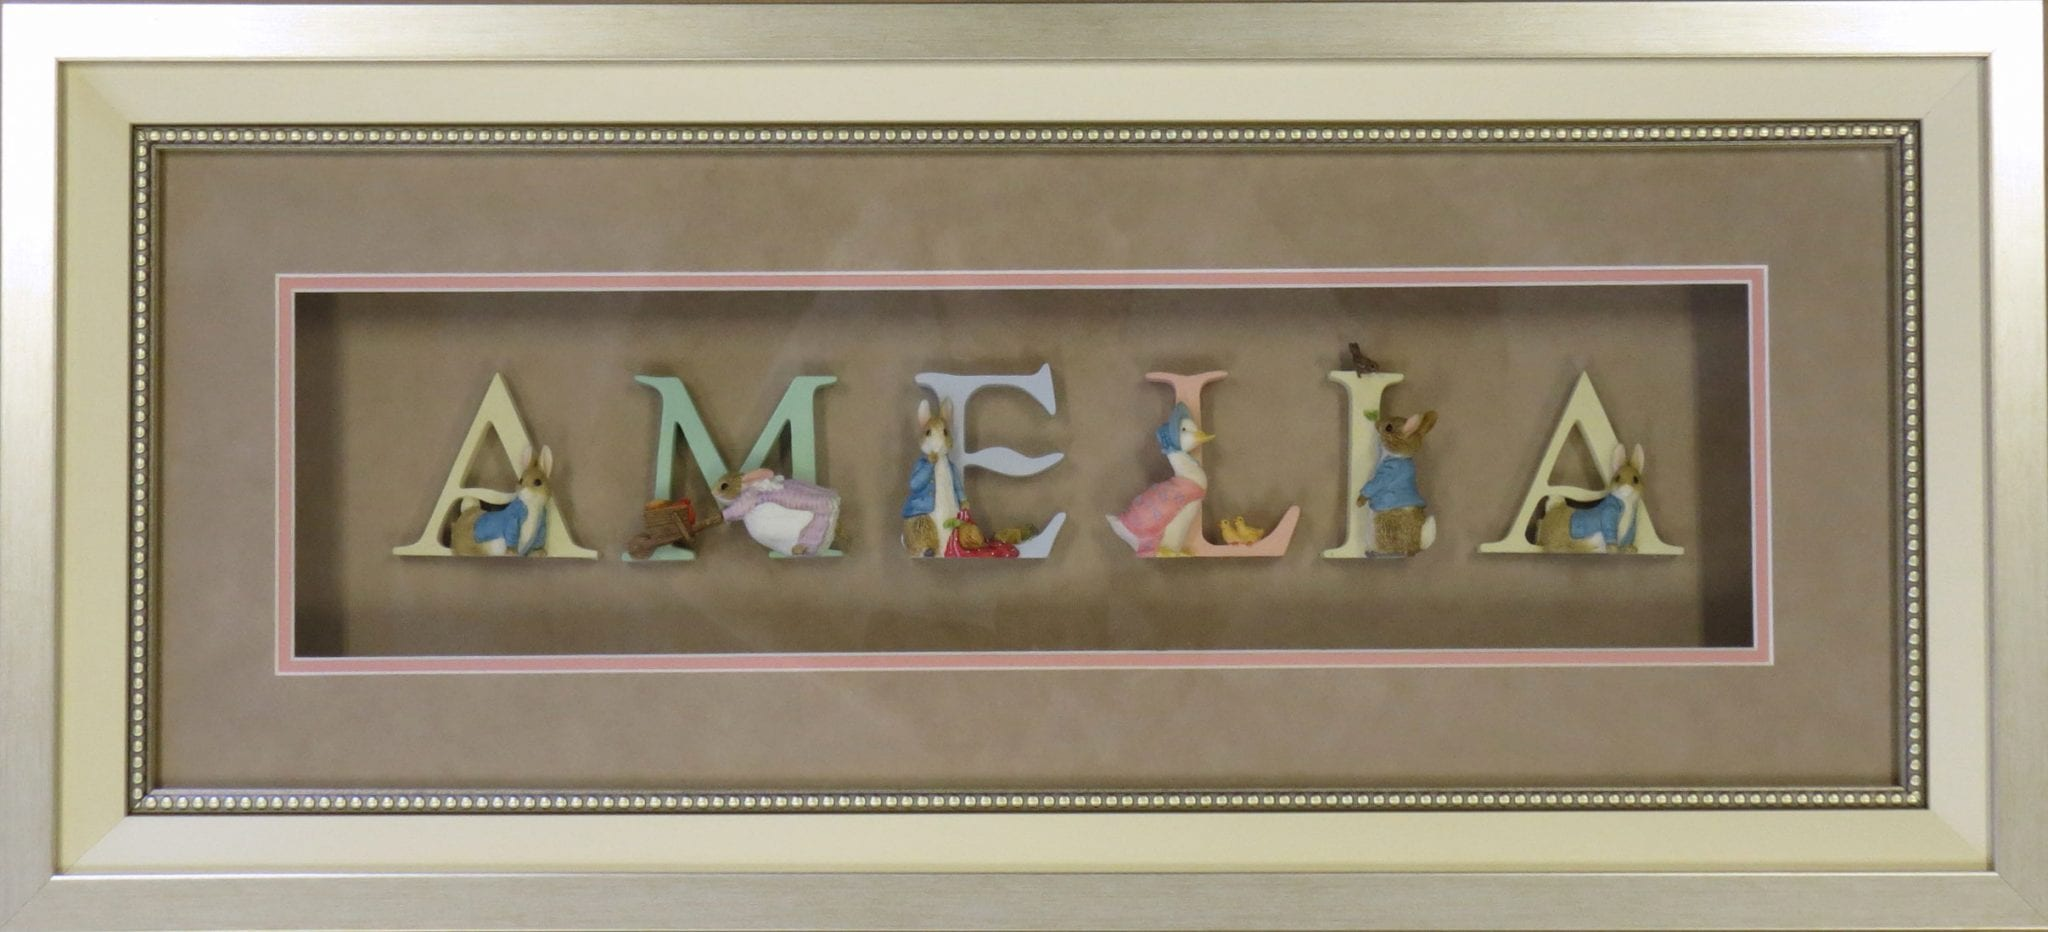 Shadow Box Framing with Letters